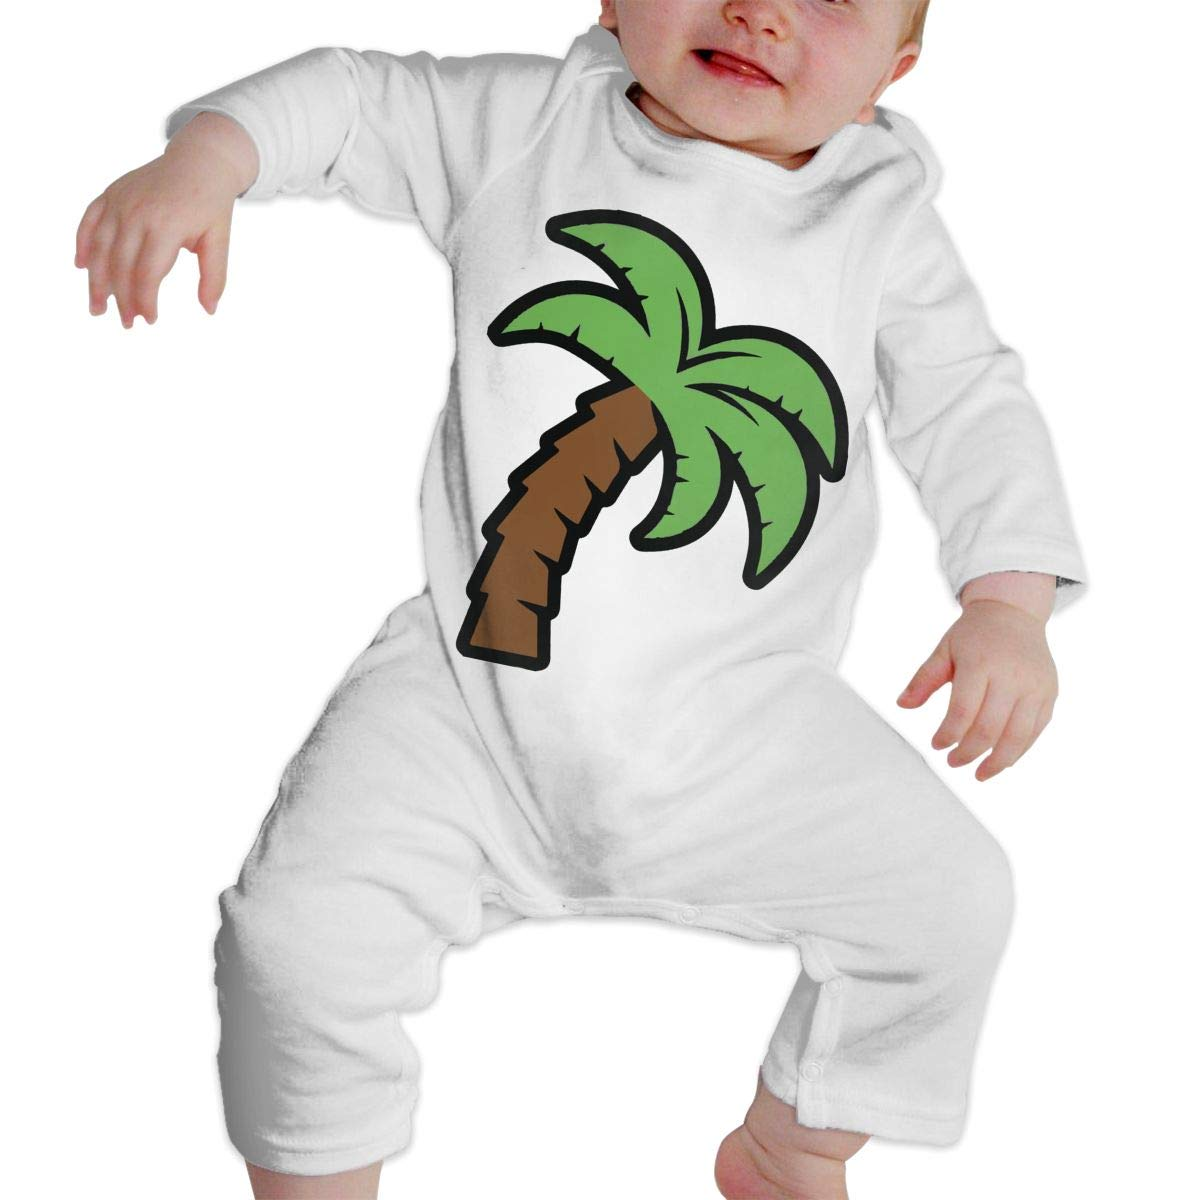 A1BY-5US Infant Baby Girls Cotton Long Sleeve Green Palm Tree Cartoon Romper Bodysuit Funny Printed Romper Clothes